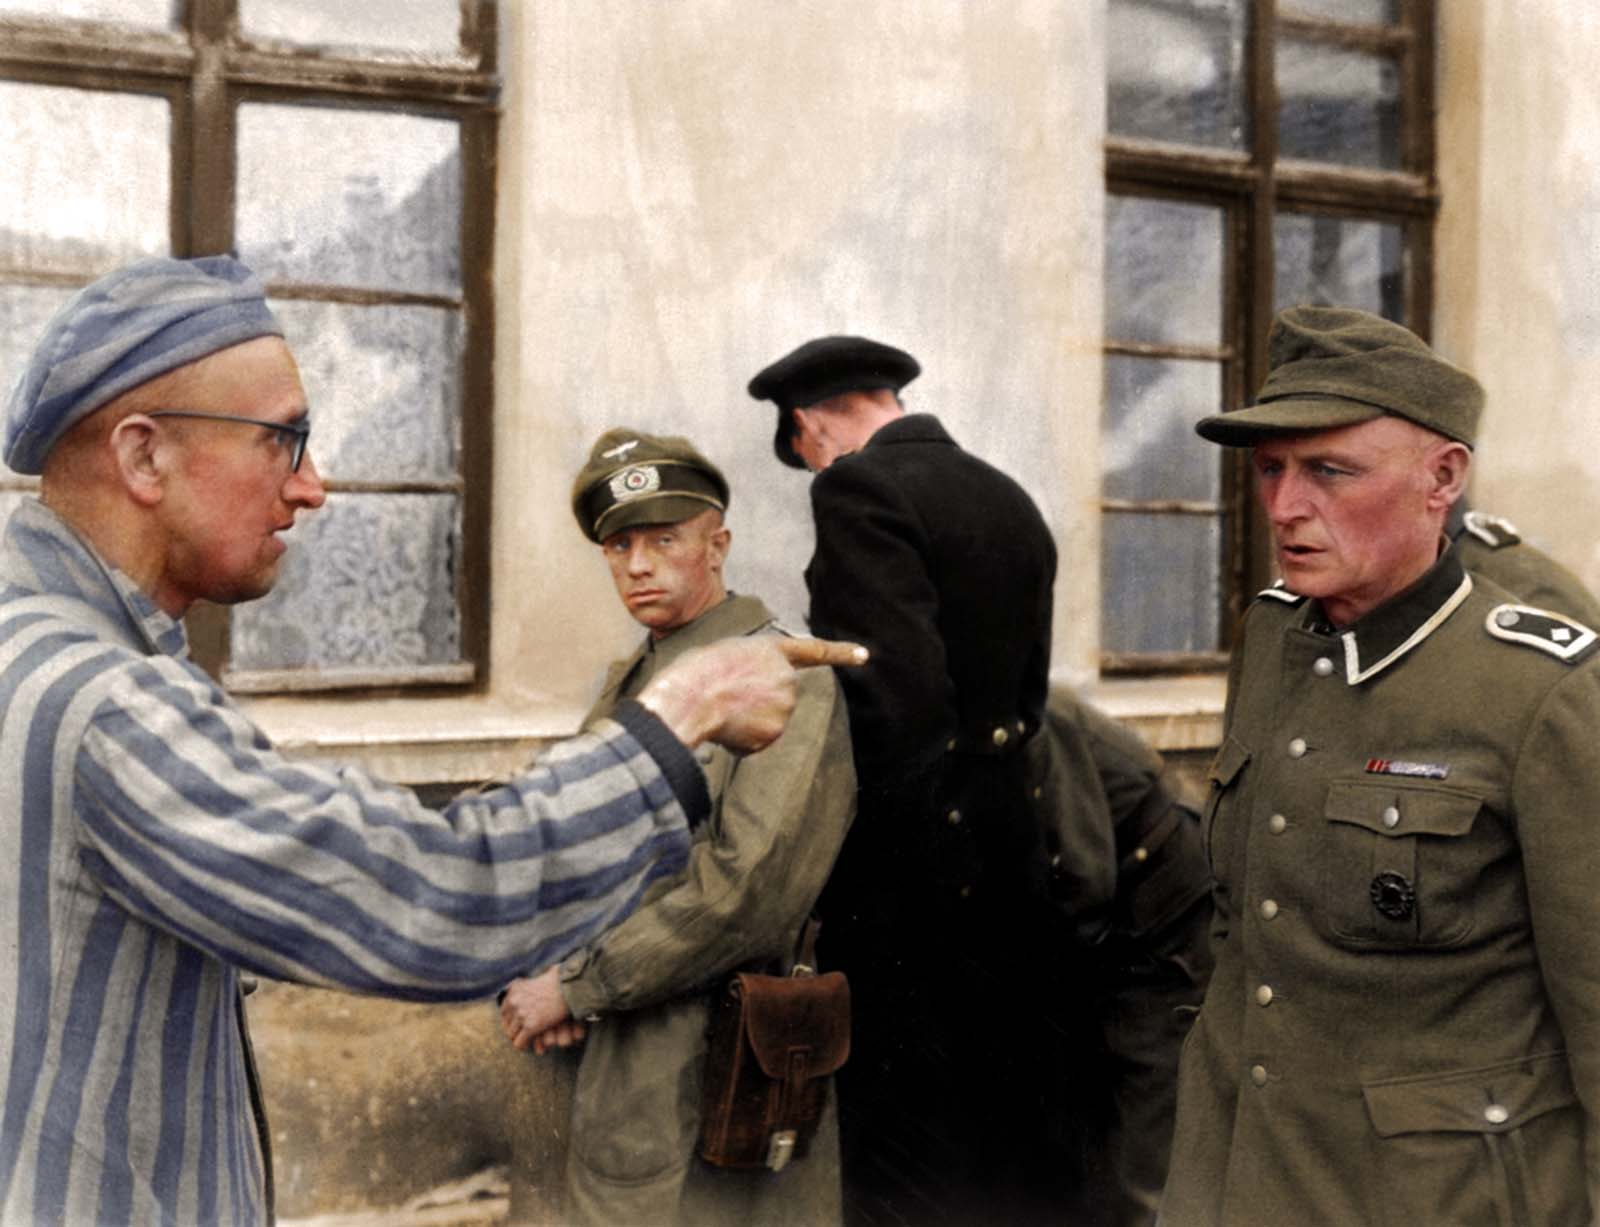 Russian survivor liberated U.S. Army in Buchenwald camp in Germany identified a former guard who were brutally beating prisoners. April 14, 1945. Colorized version. The original photograph.